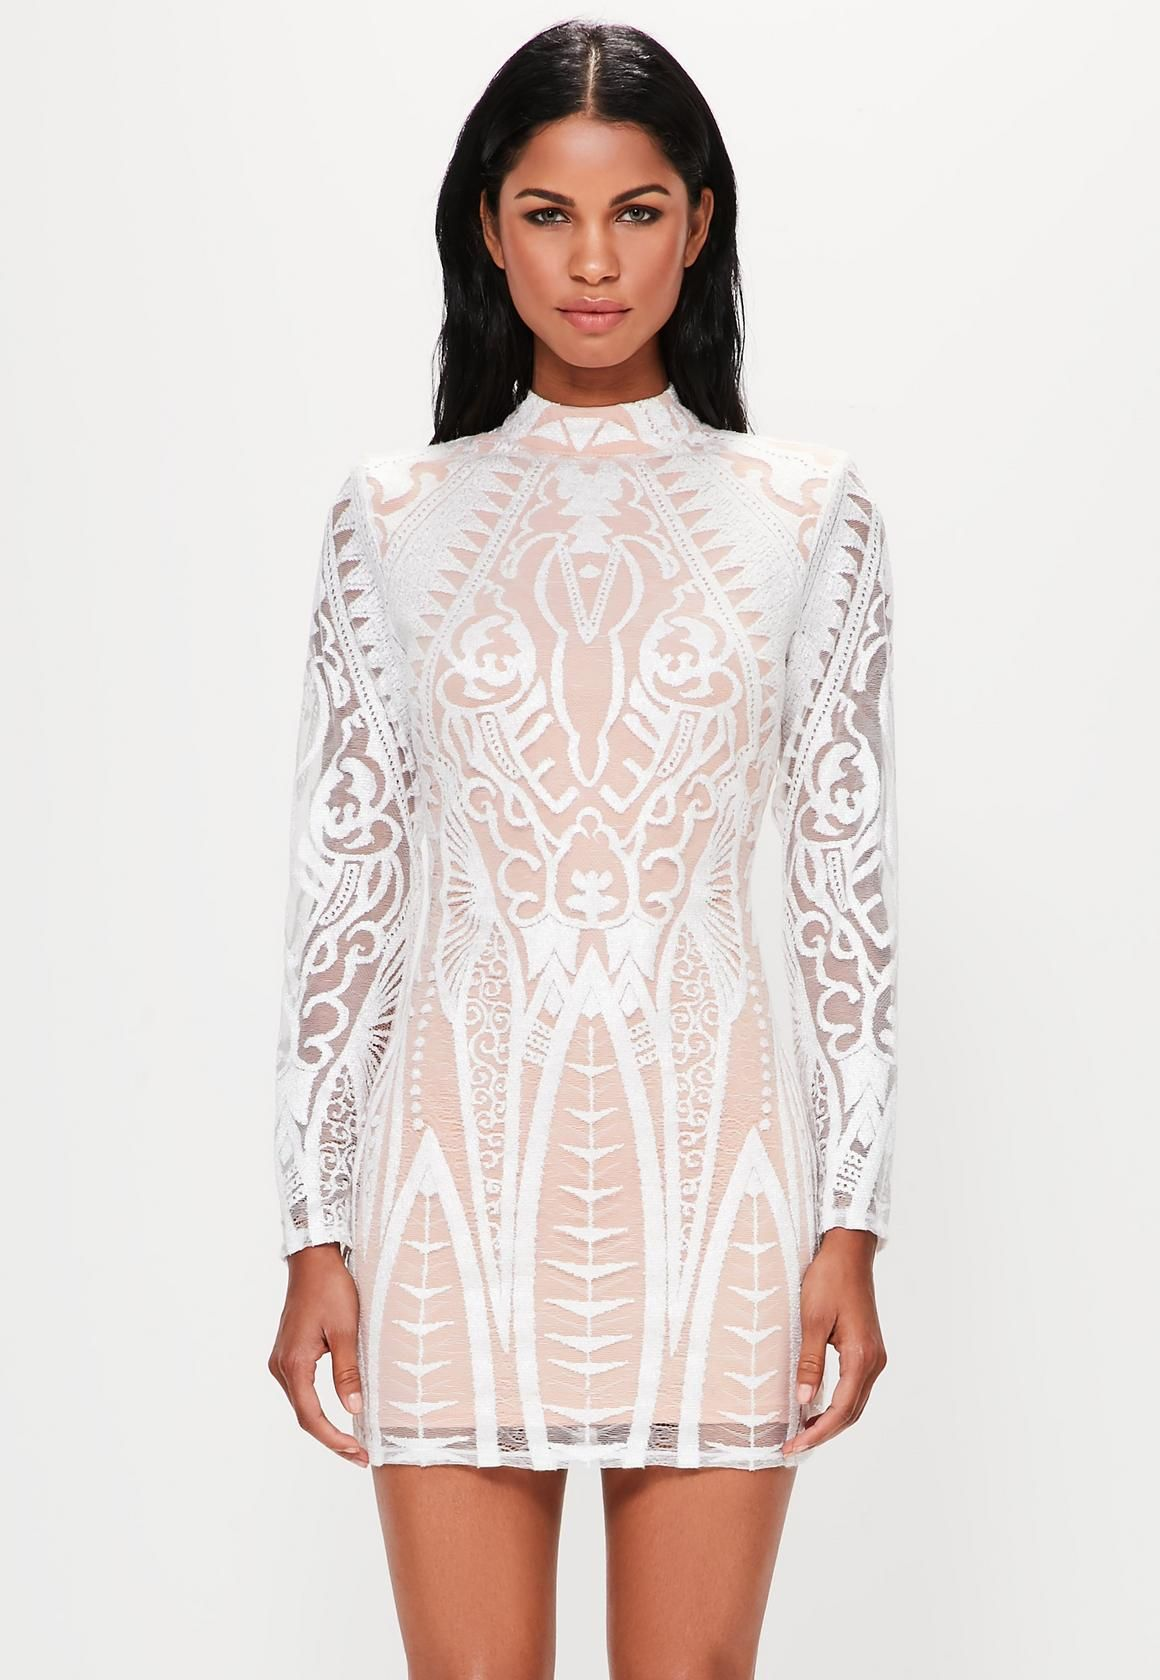 1ac60bfdf5b9 Missguided - Peace Love White Placed Lace High Neck Mini Dress White Long  Sleeve Dress,